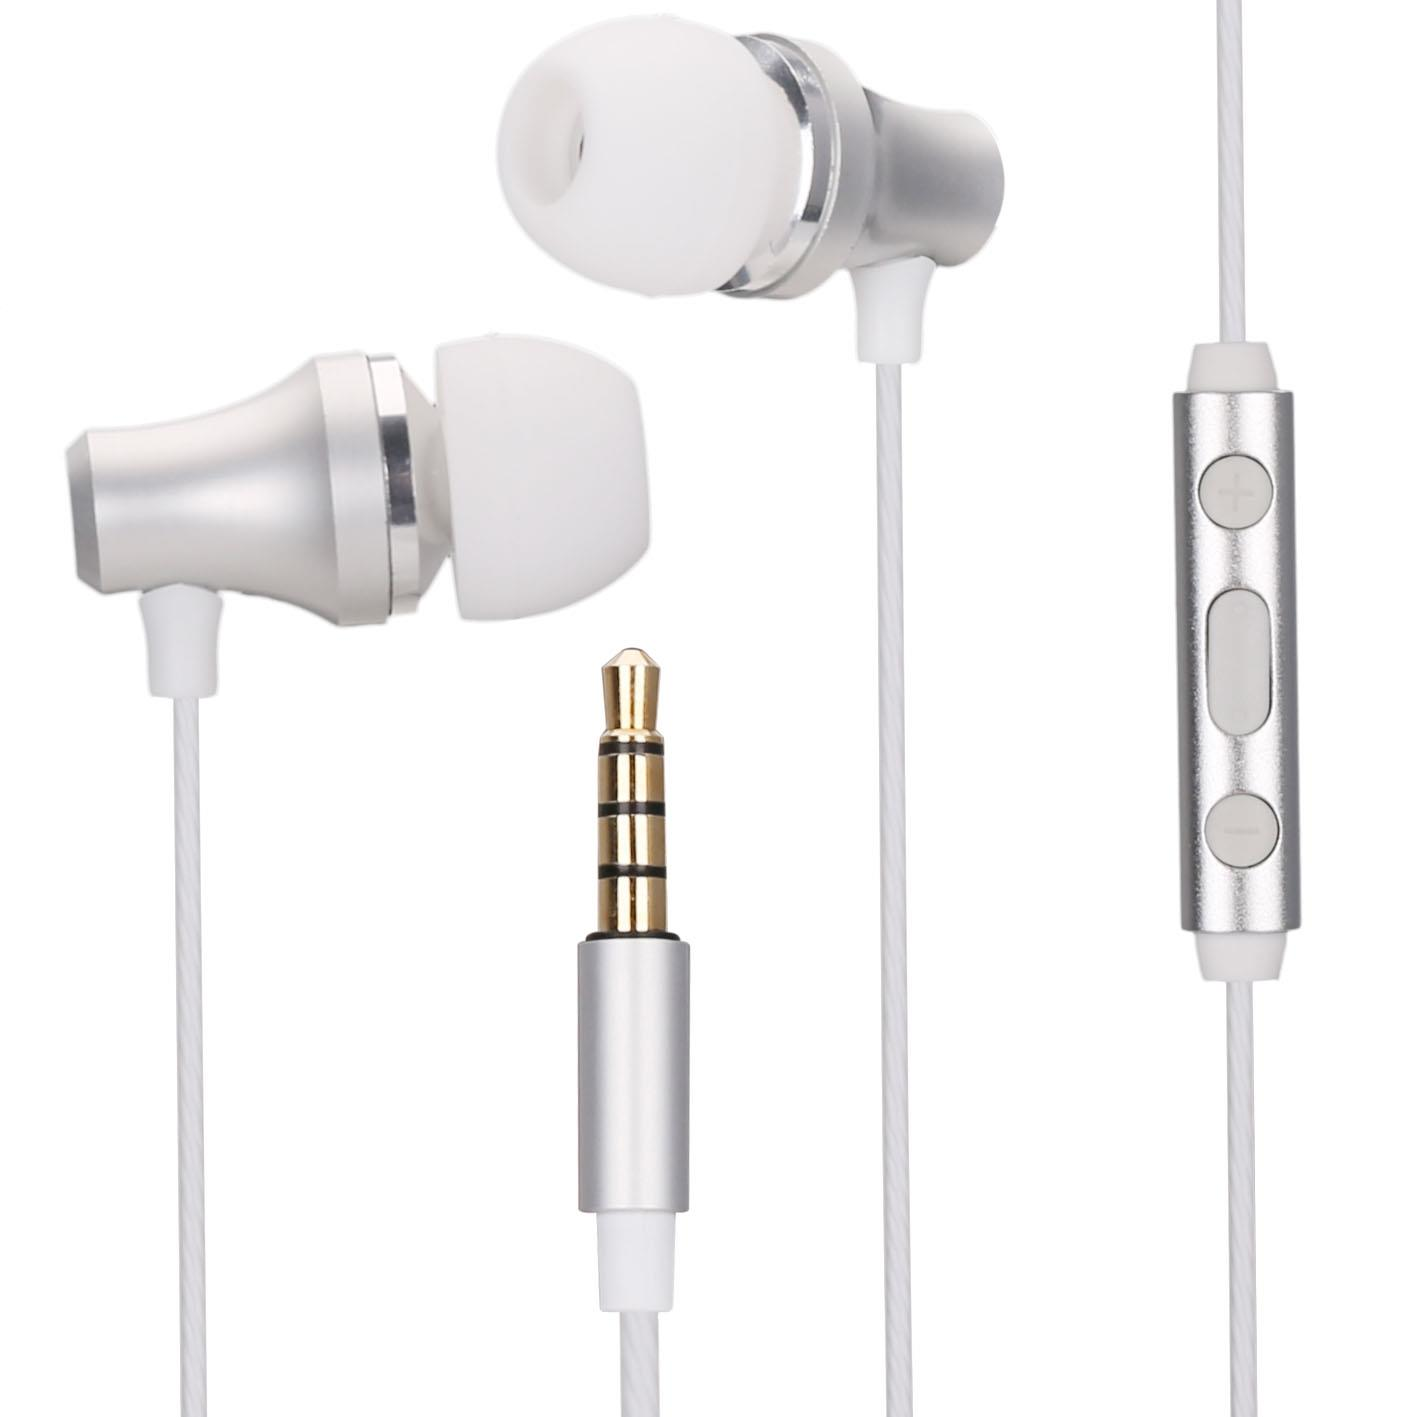 Good In Ear Headphones For Music And Heavy Bass Sound For Apple Galaxy Smartphone